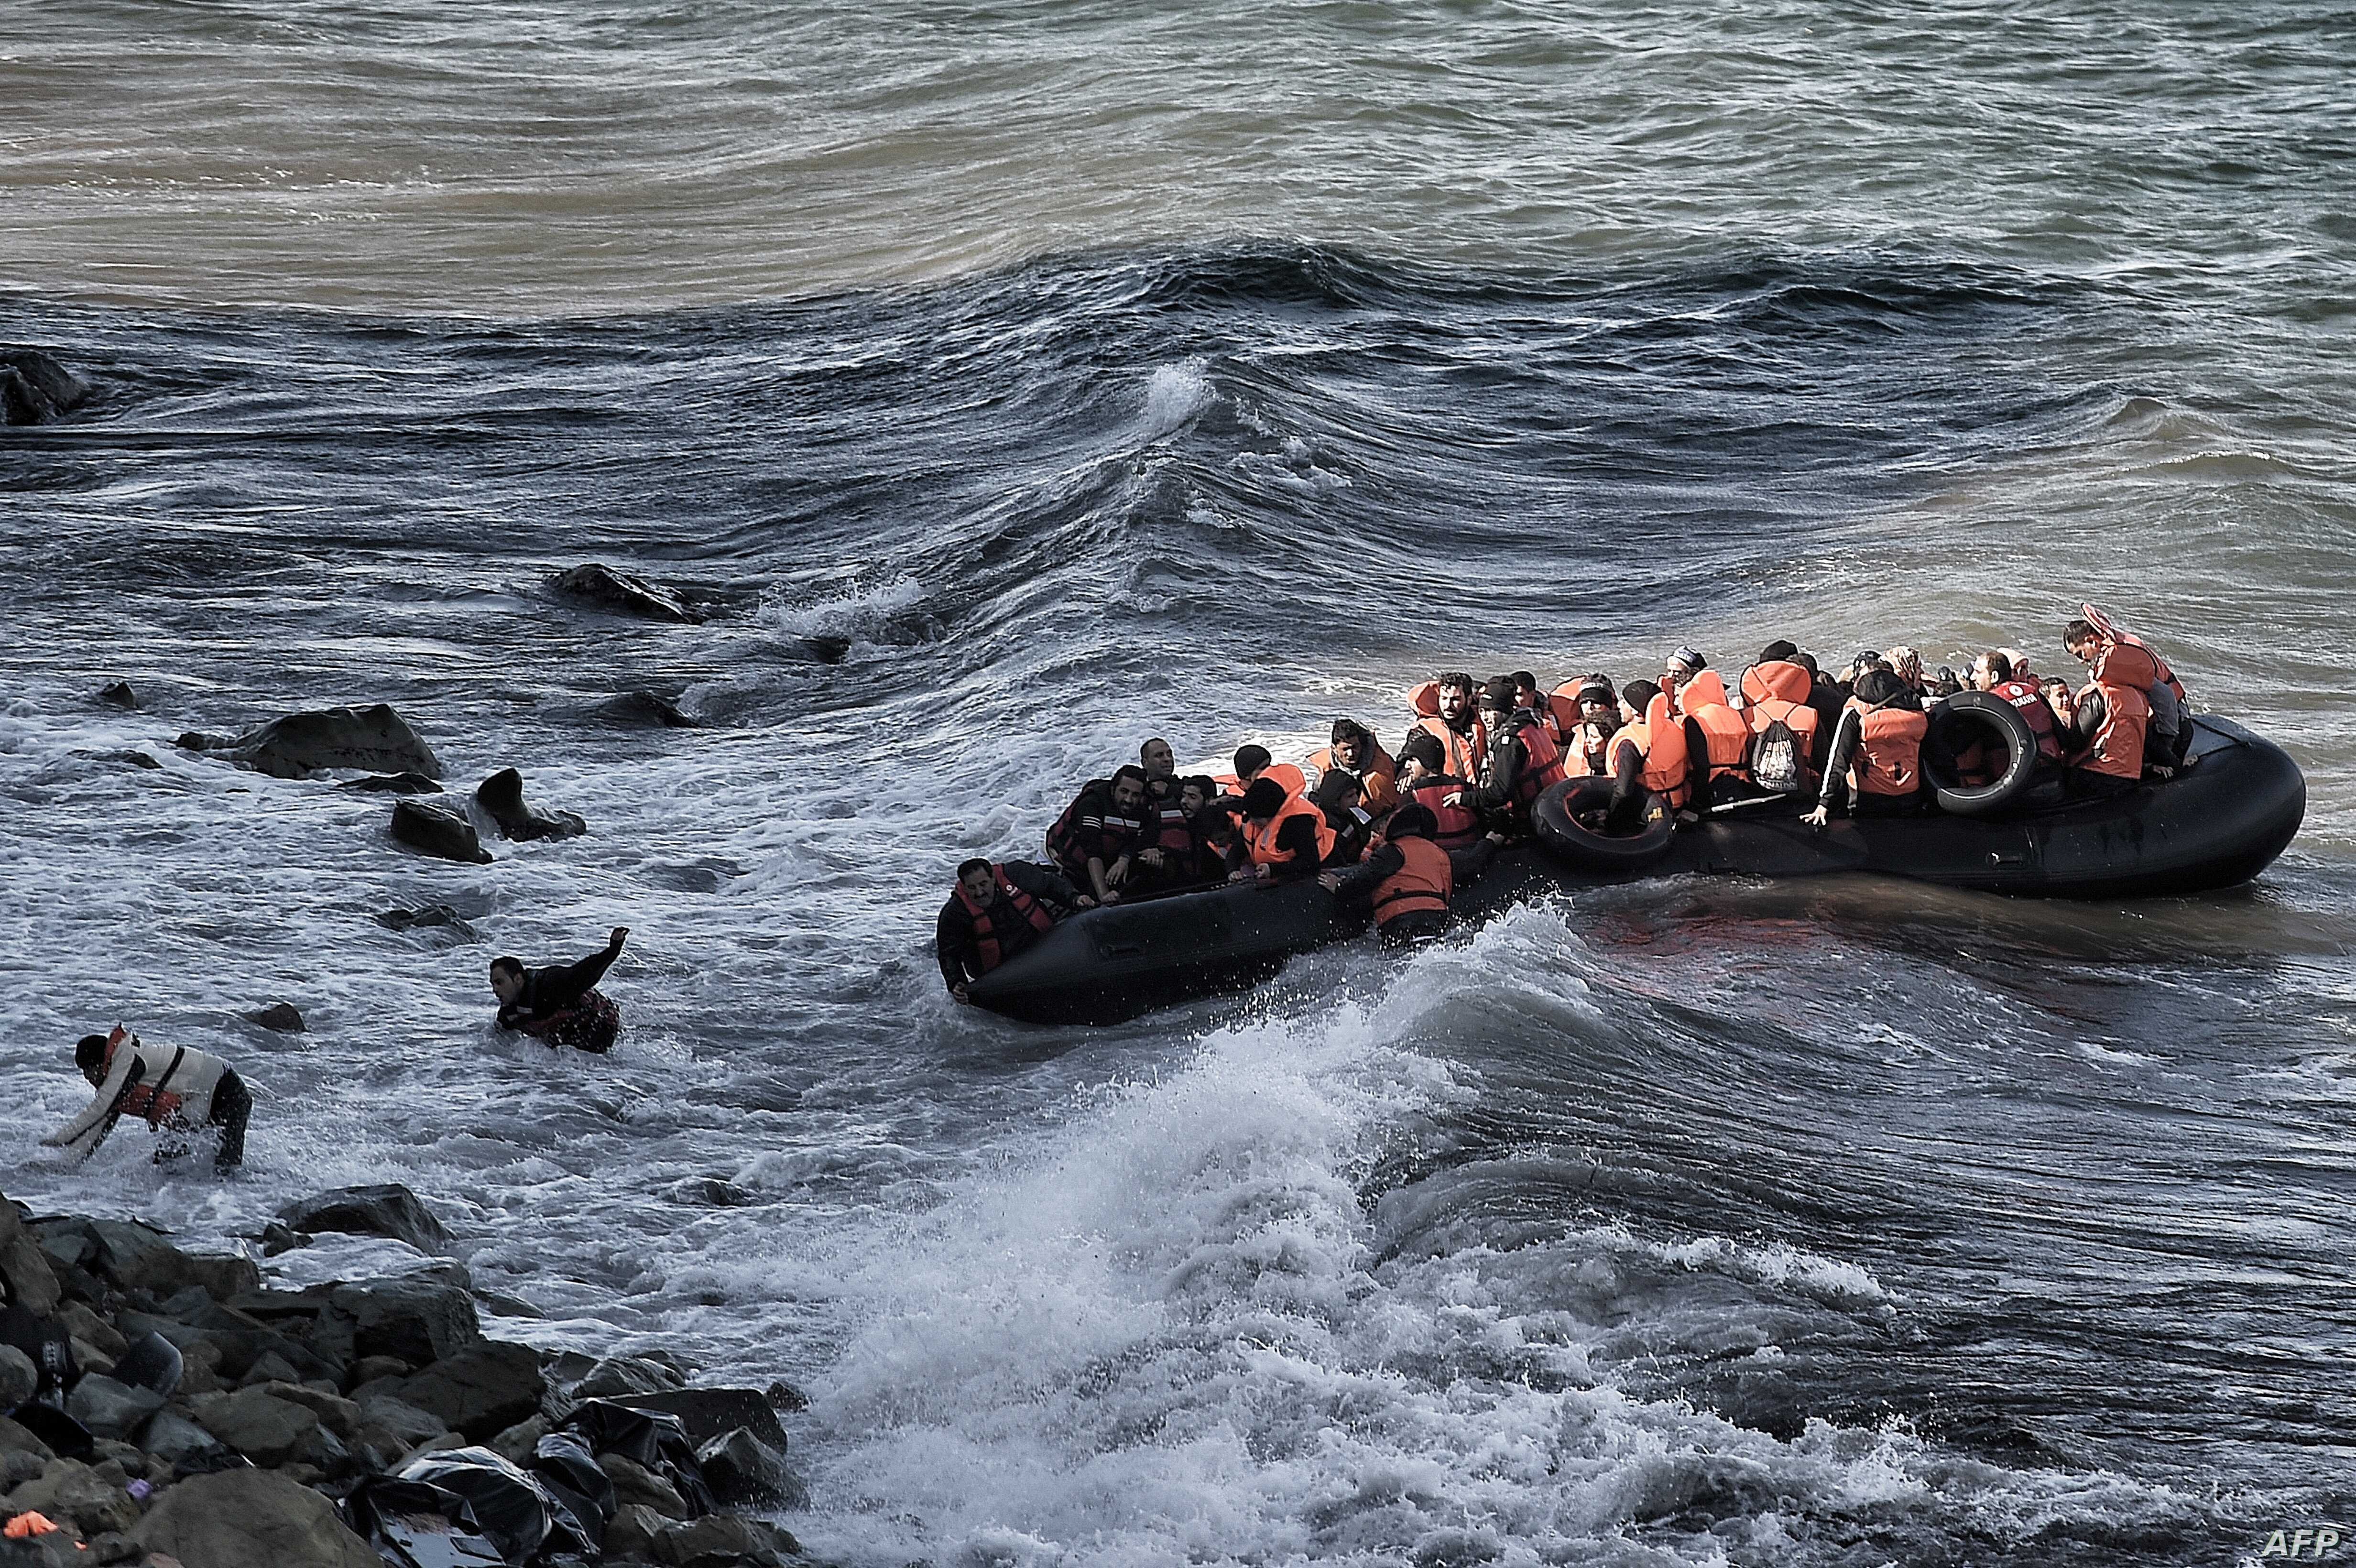 Refugees and migrants try to reach the shore on the Greek island of Lesbos, despite a rough sea, after crossing the Aegean Sea from Turkey, Oct. 30, 2015..